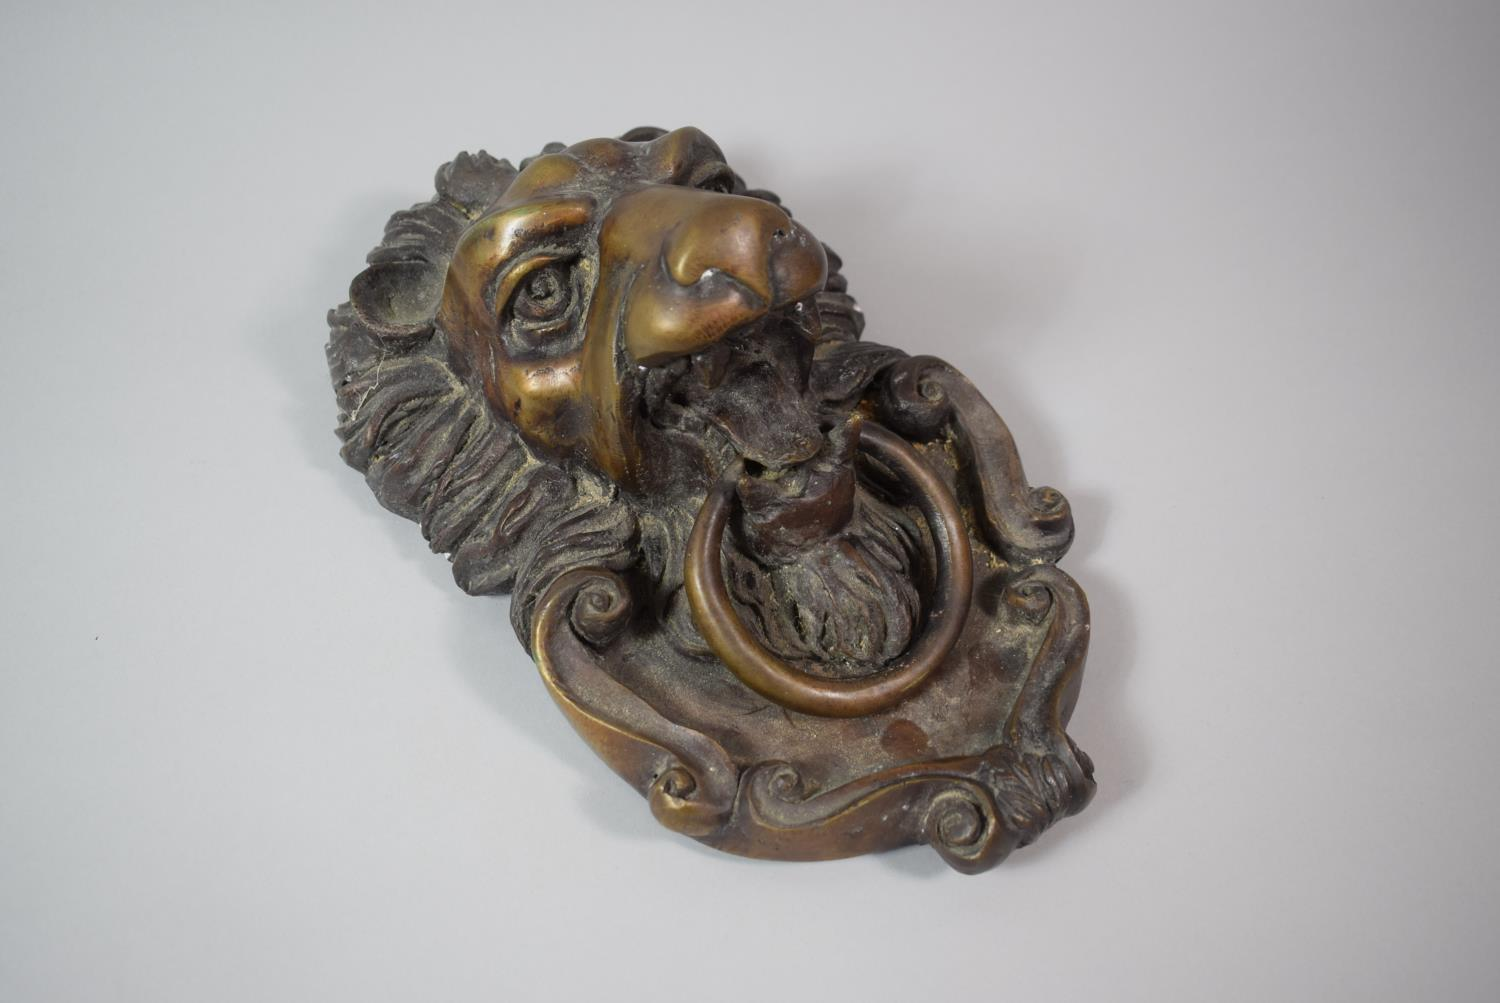 Lot 40 - A Large Heavy Cast Bronze Door Knocker in the Form of a Lion Mask, 29cm High